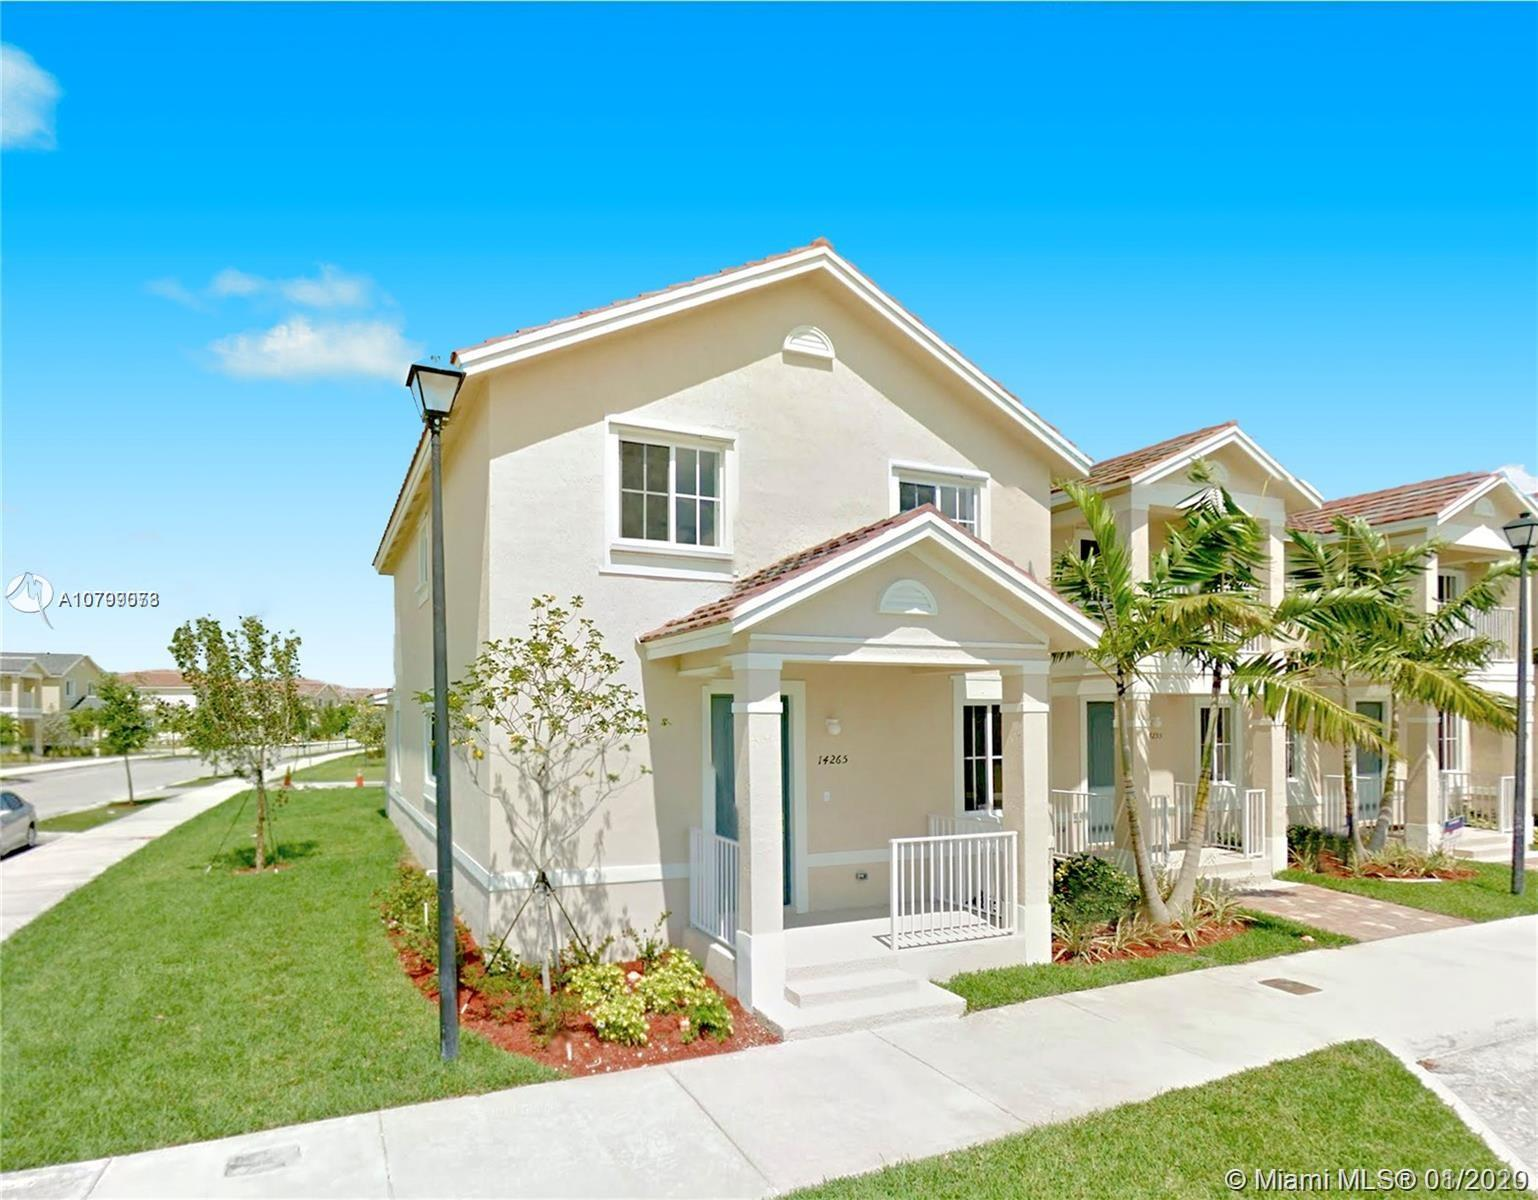 14265 SW 274th Way, Homestead, FL 33032 - Homestead, FL real estate listing